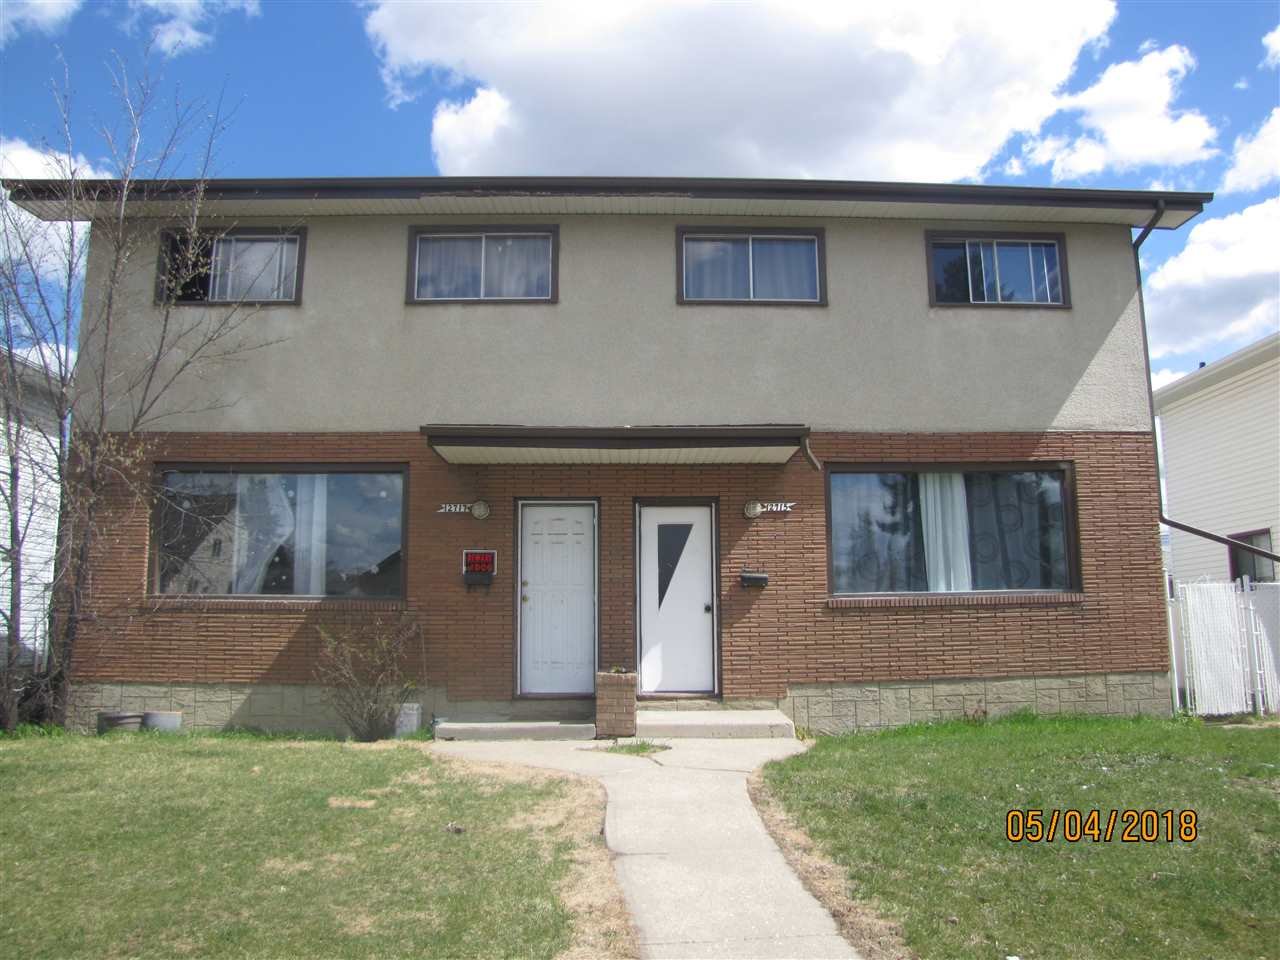 GREAT OPPORTUNITY FOR THIS FULL DUPLEX 2 STOREY WITH ALMOST 1,200 SQ. FT PER SIDE IN A GREAT LOCATION CLOSE TO SCHOOLS, SHOPPING AND TRANSPORTATION. EACH SIDE HAS 3 BEDROOMS, 2 BATHROOMS, NEW CARPET, LINO, PAINT, AND 4 APPLIANCES. THE BASEMENTS ARE COMPLETED AND BOTH SIDES HAVE NEWER FURNACES AND HOT WATER TANKS. THE DOUBLE DETACHED GARAGE IS SHARED AND IS 26X22 IN SIZE. THE PROPERTY IS ON A LARGE LOT ON A QUIET STREET. THE UTILITIES ARE SEPERATE AND THE PROPERTY HAS ONE TITLE. GREAT INVESTMENT OPPORTUNITY.